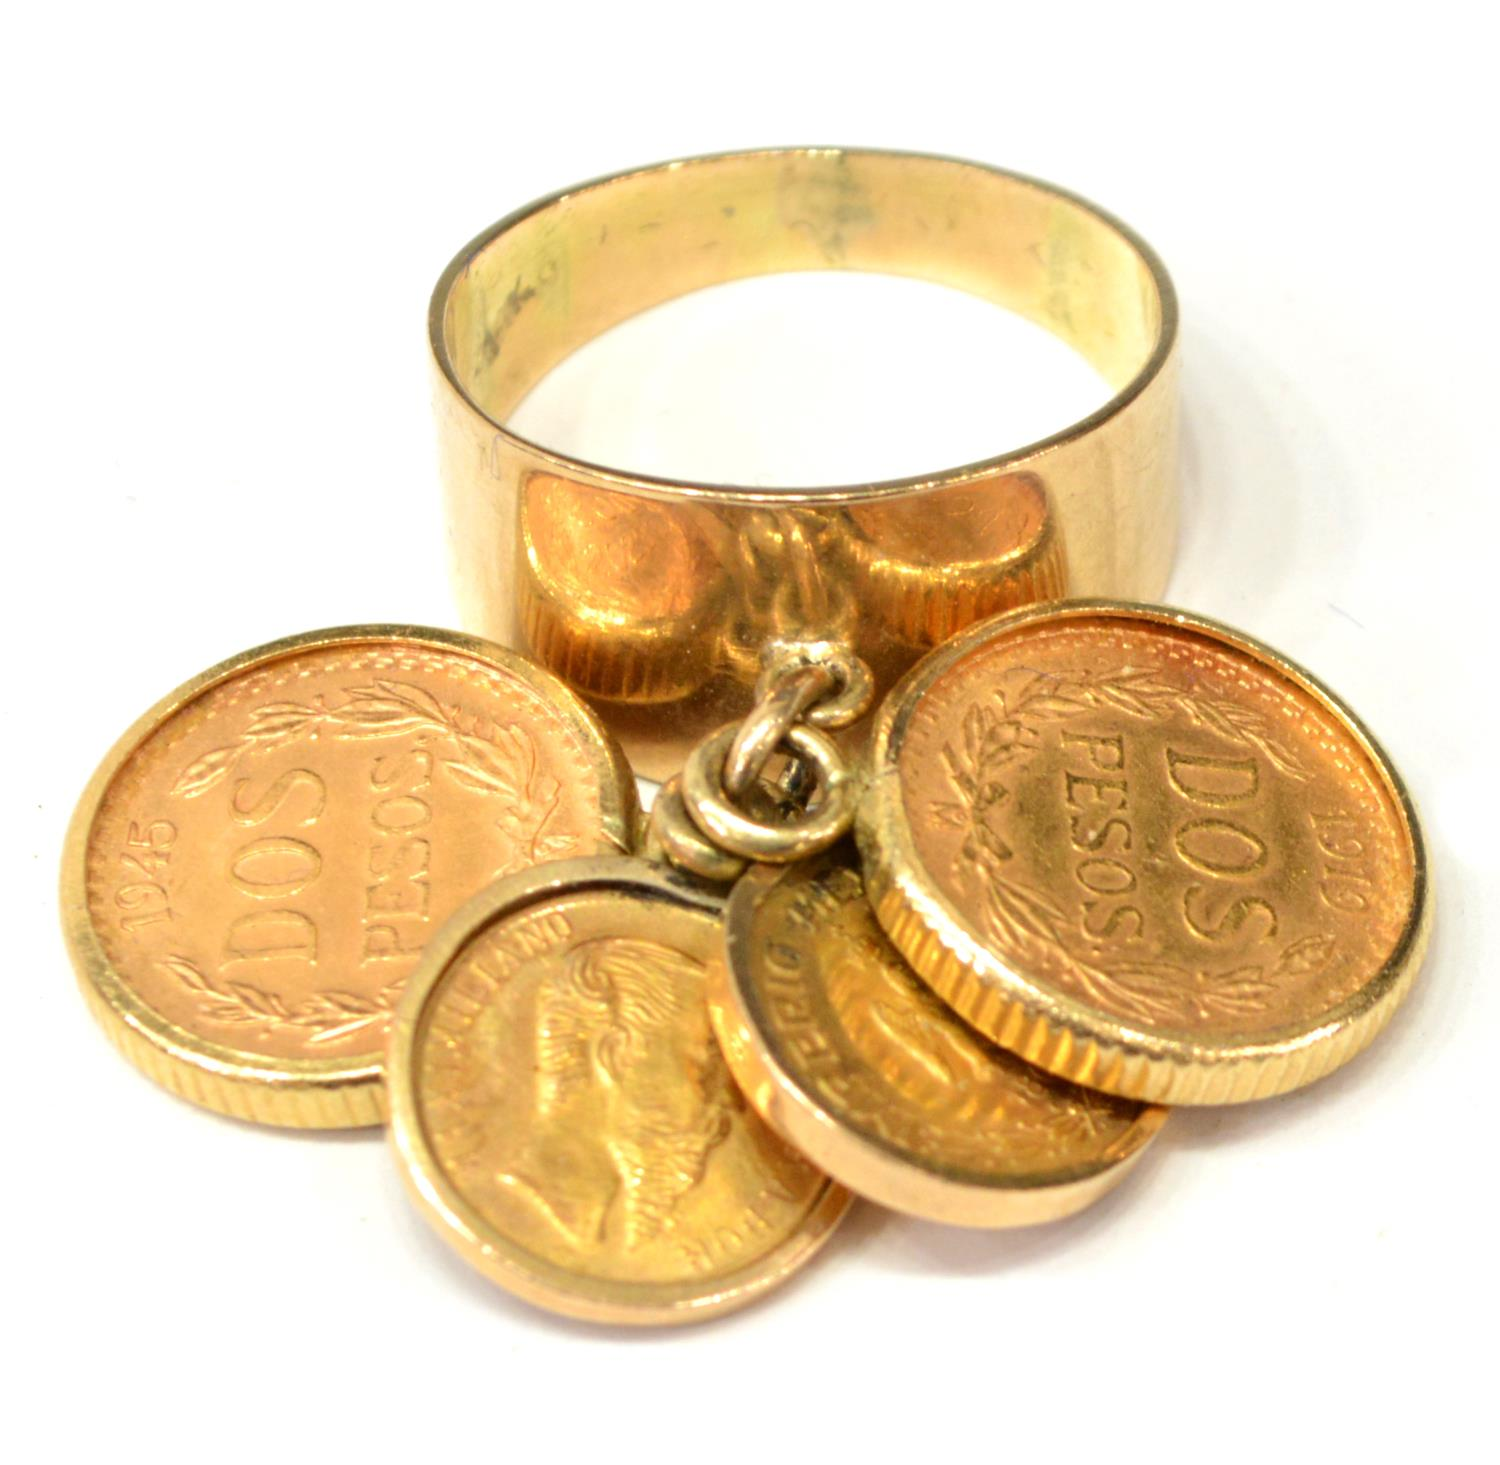 14kt gold dangling peso coin ring